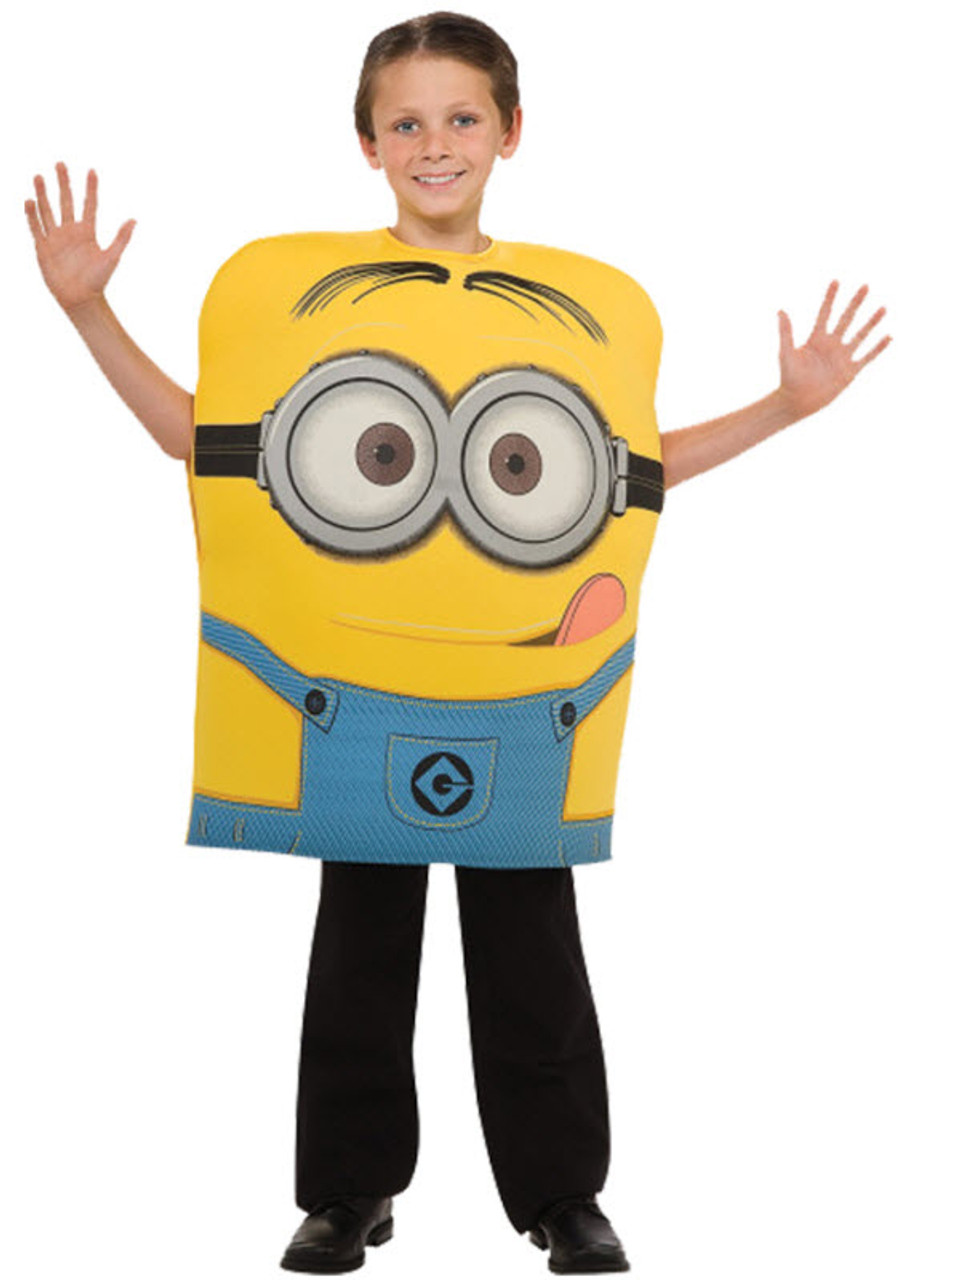 Boyu0027s Minion Costume  sc 1 st  Halloween Express & Boyu0027s Minion Costume - Halloween Express